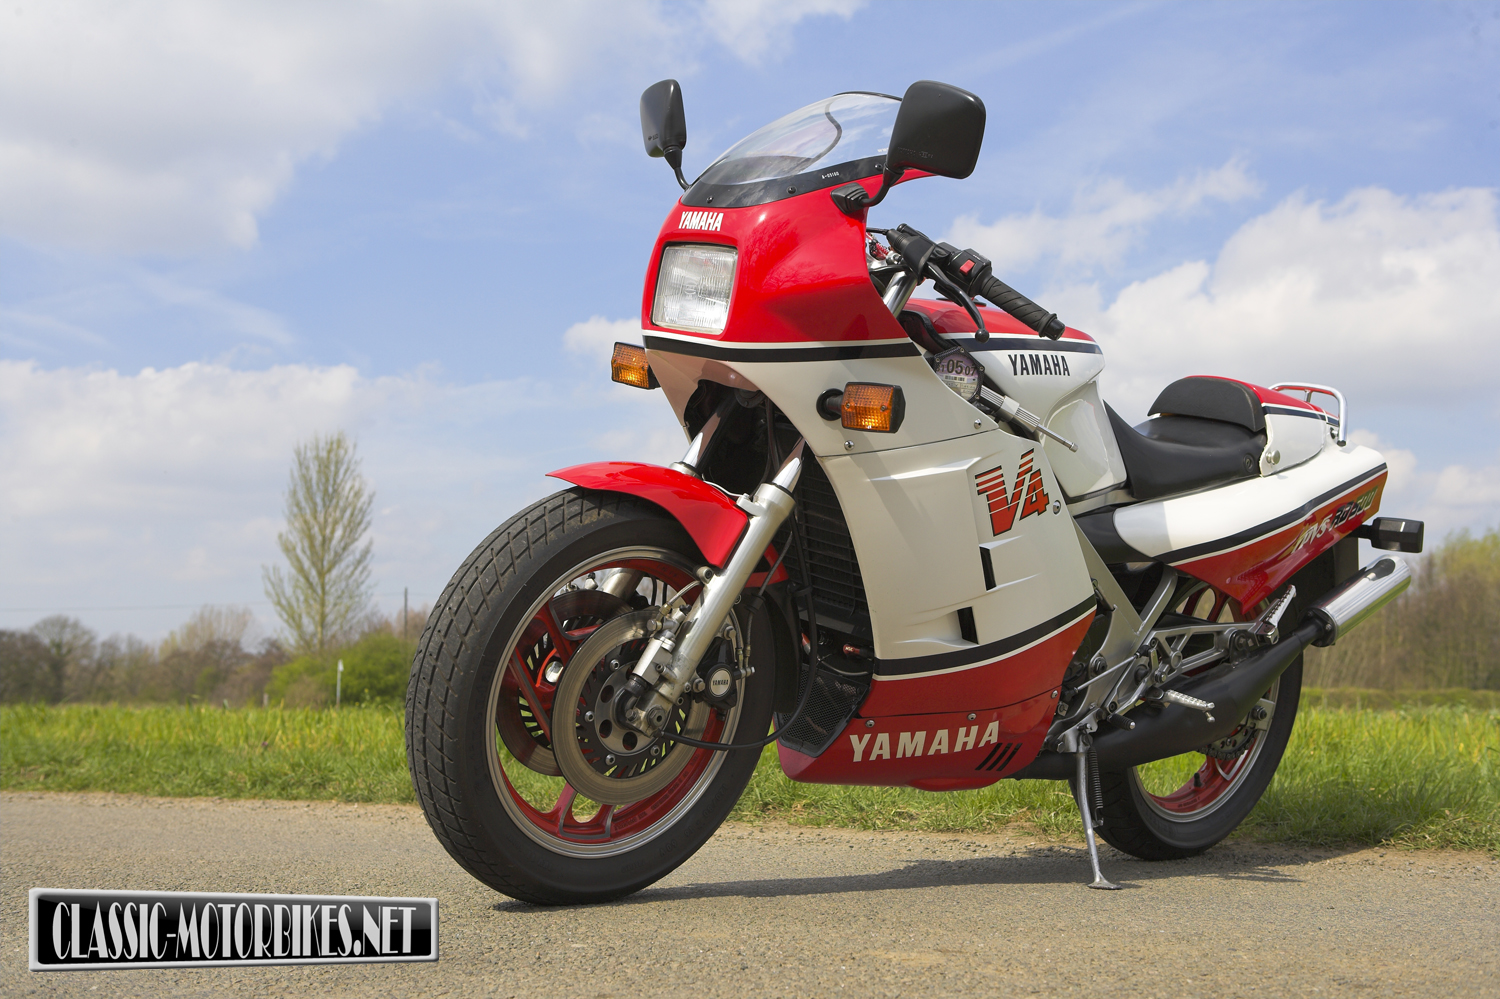 Yamaha RD 500 LC 1985 images #90050